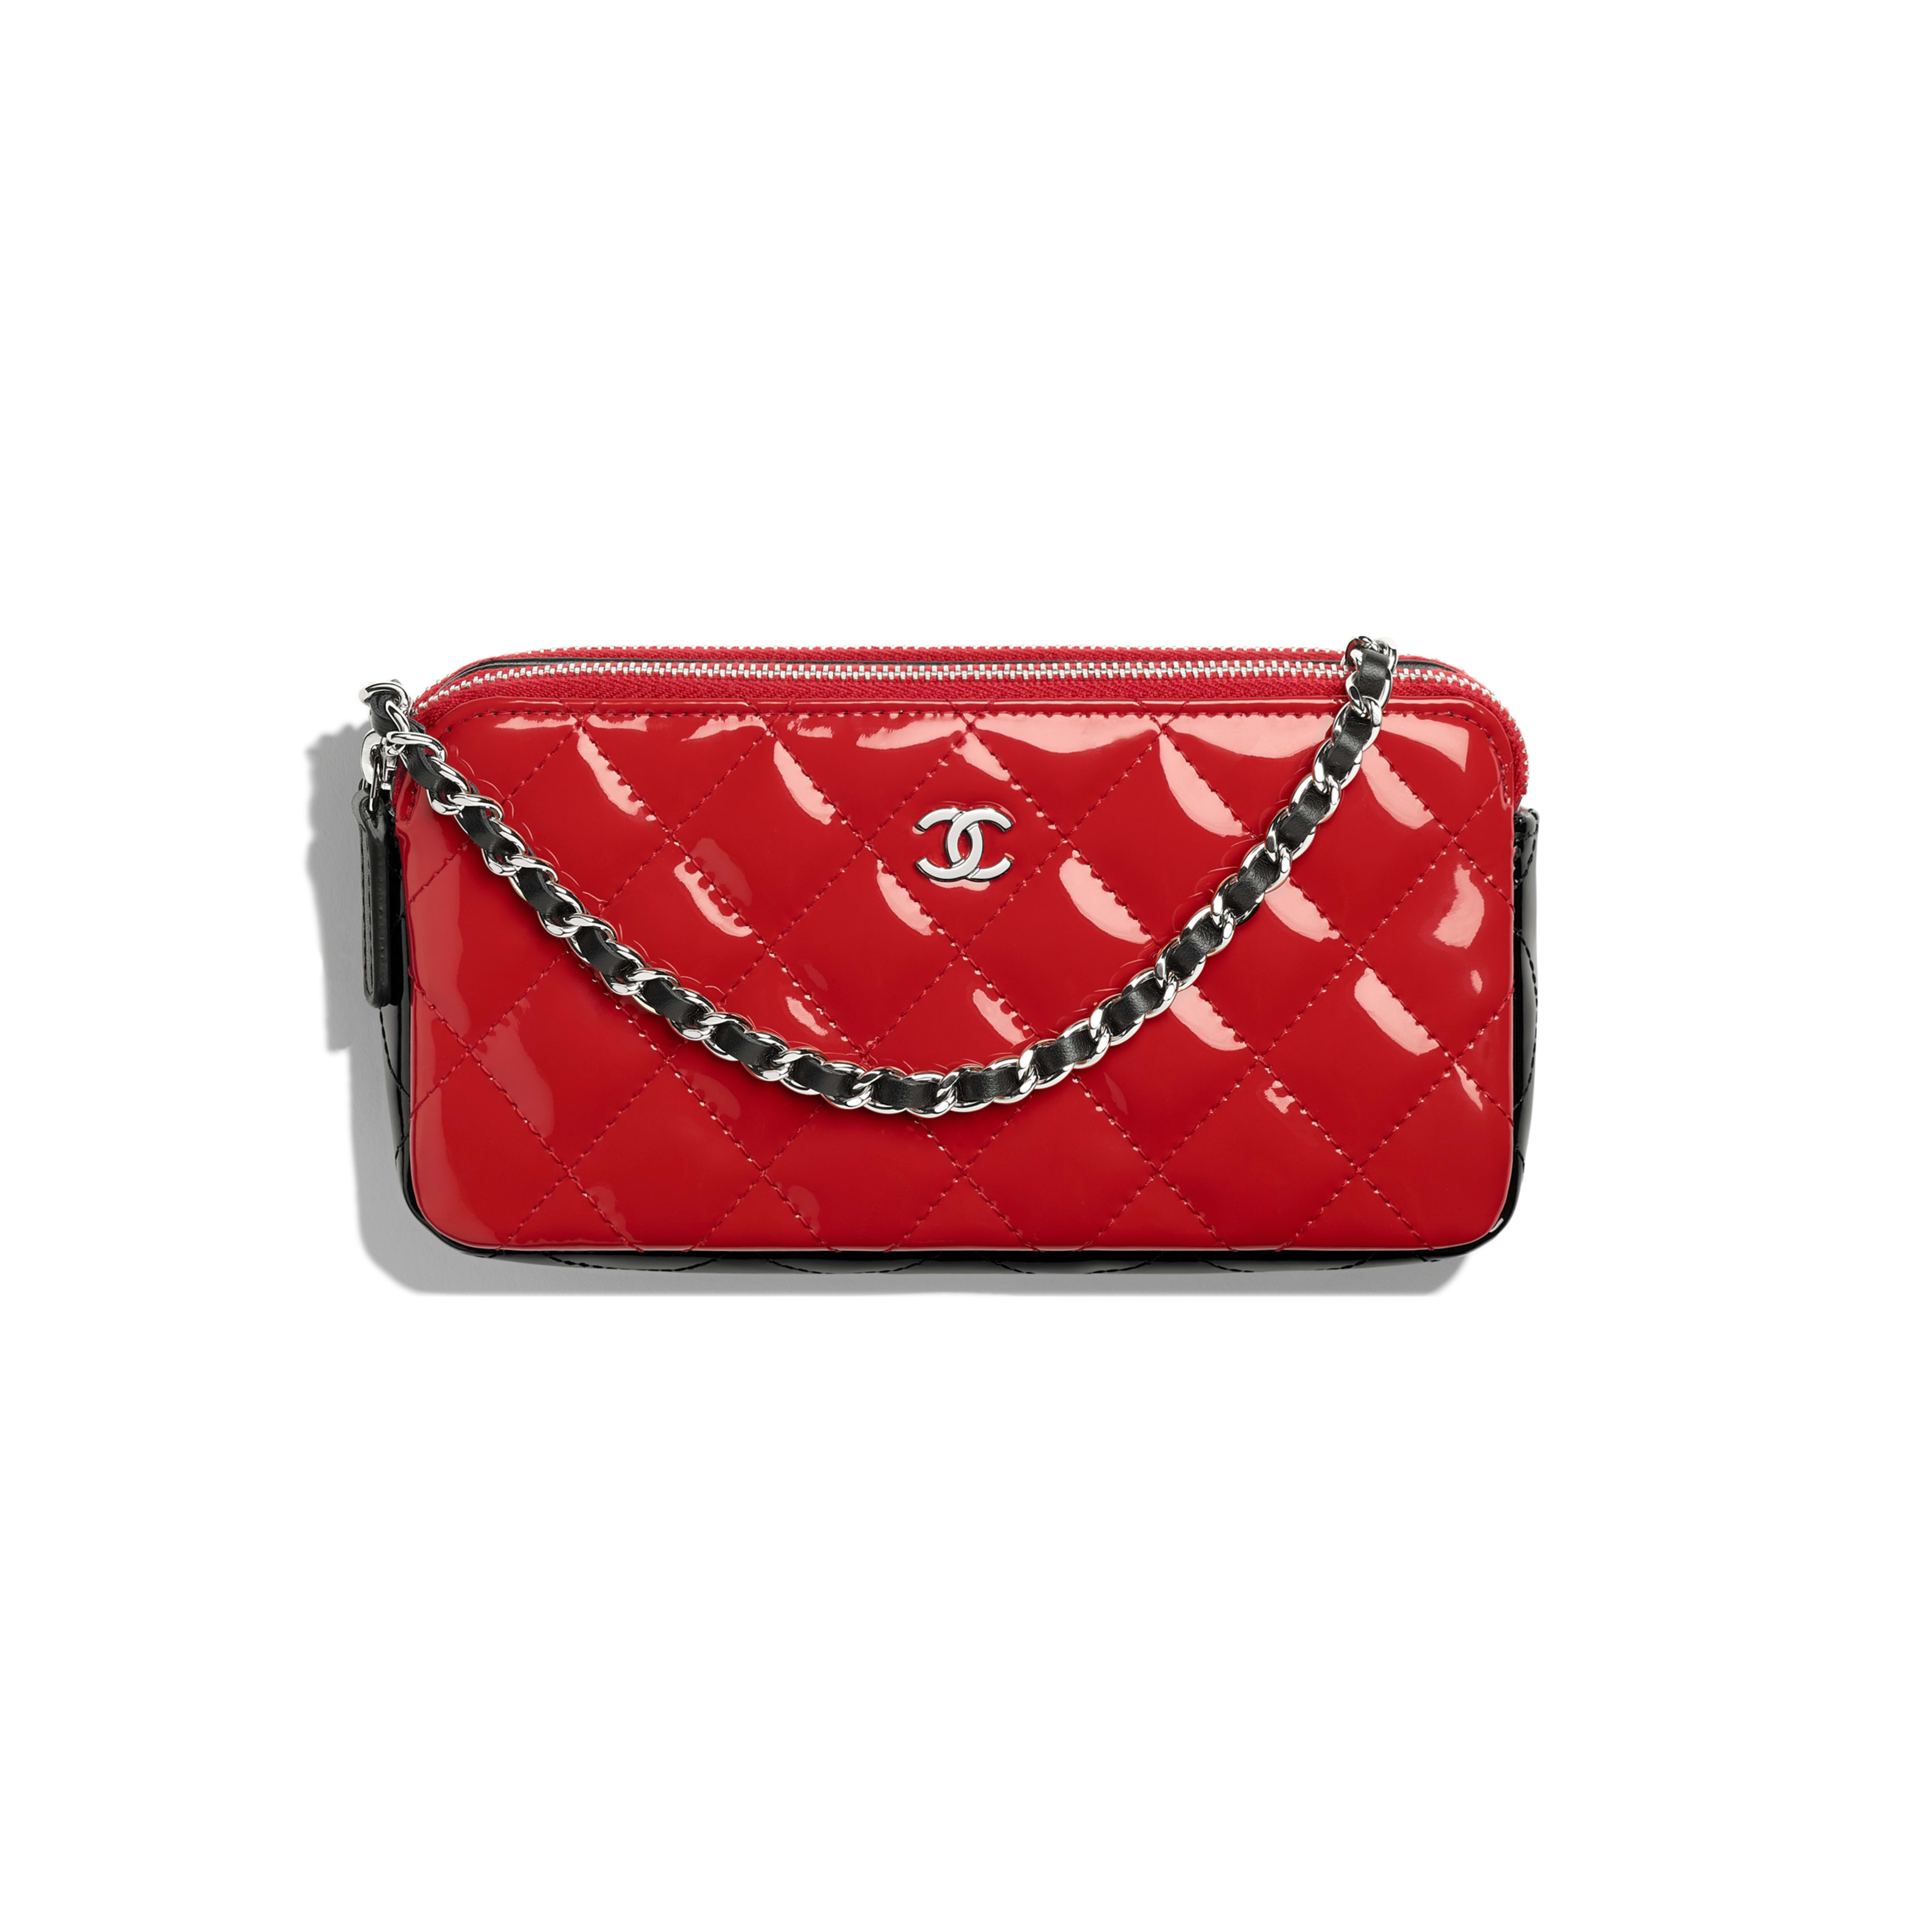 Classic Clutch With Chain - Red & Black - Patent Calfskin - Default view - see full sized version